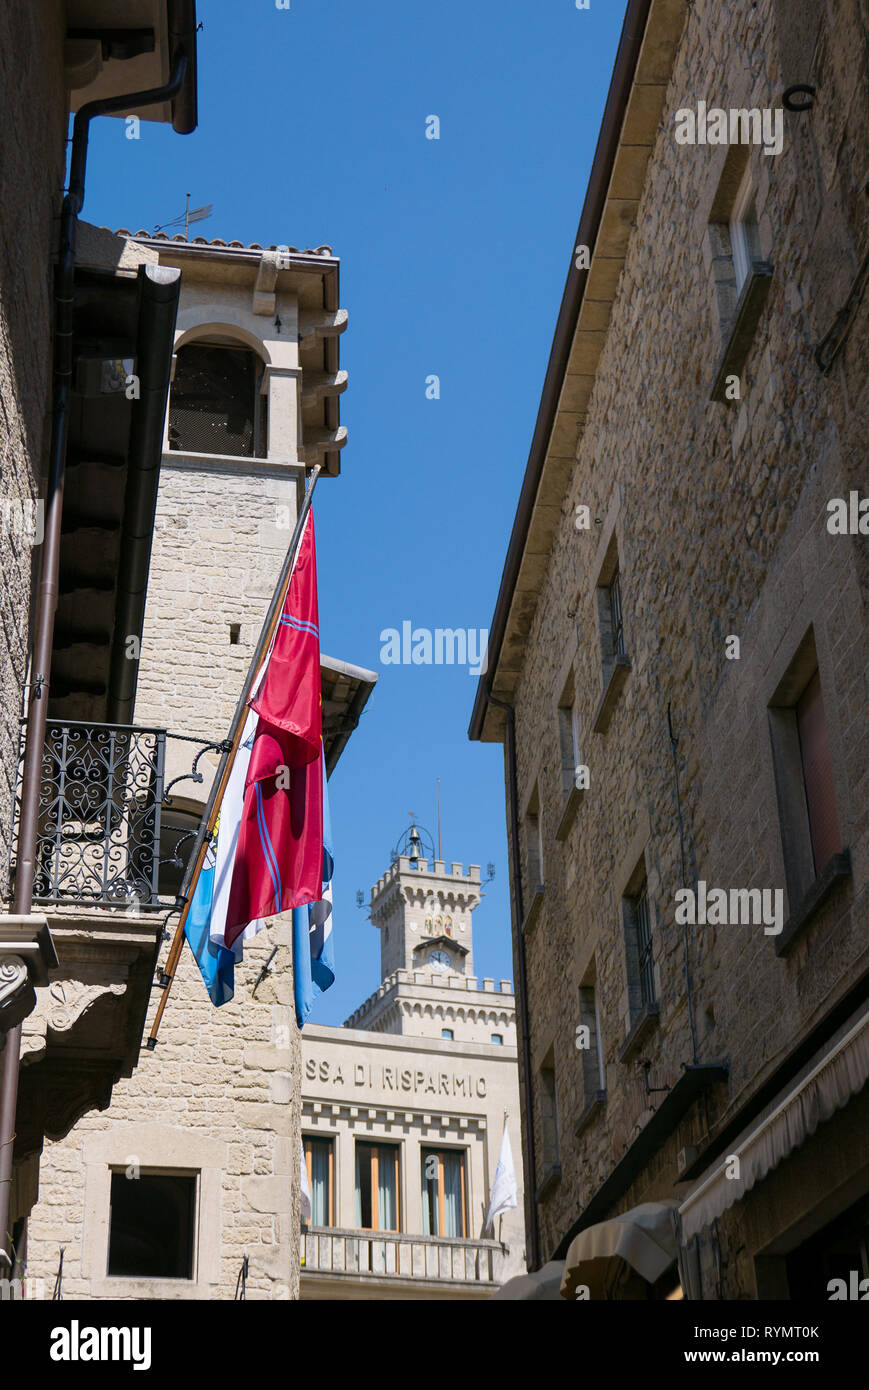 SAN MARINO, REPUBLIC OF SAN MARINO - 6 AUGUST 2018: View of the  the public palace in the Piazza della Libertà in San Marino. - Stock Image